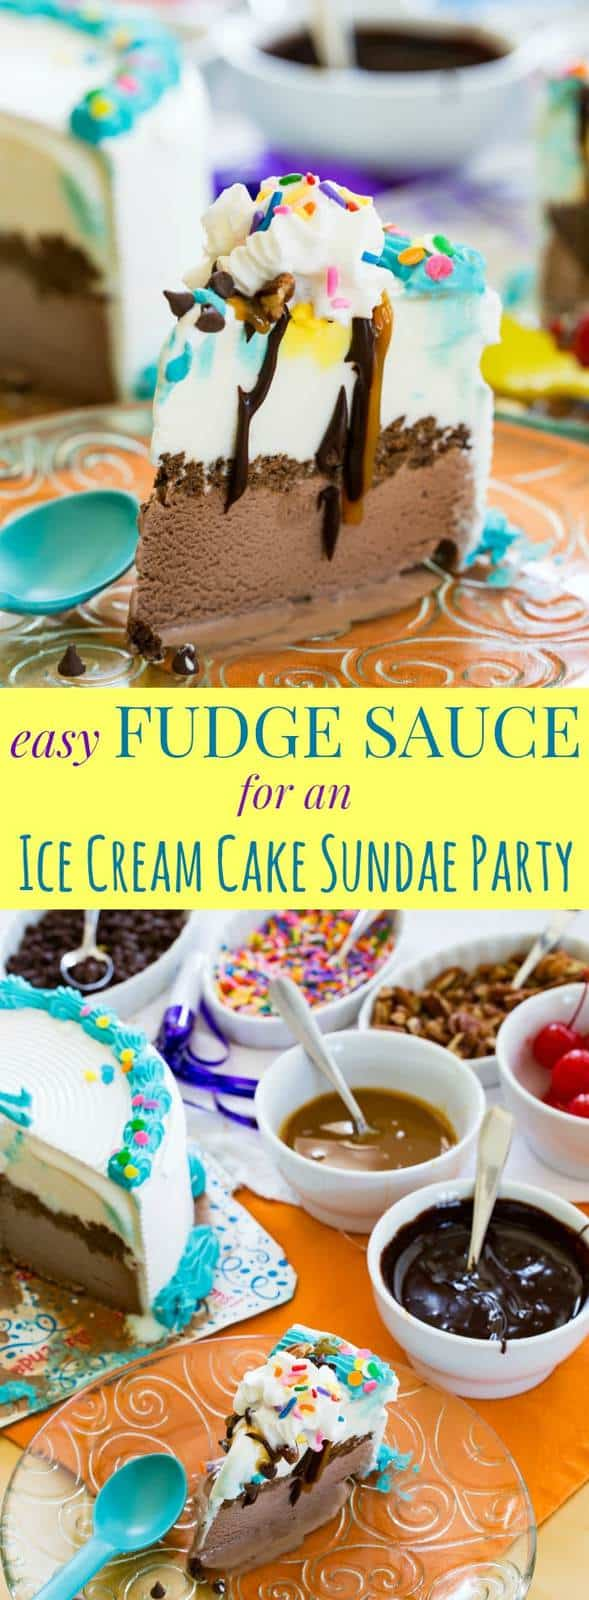 Easy Fudge Sauce Recipe - make this simple chocolate ice cream topping in five minutes with only four ingredients. Then host your own Ice Cream Cake Sundae Party. #AD